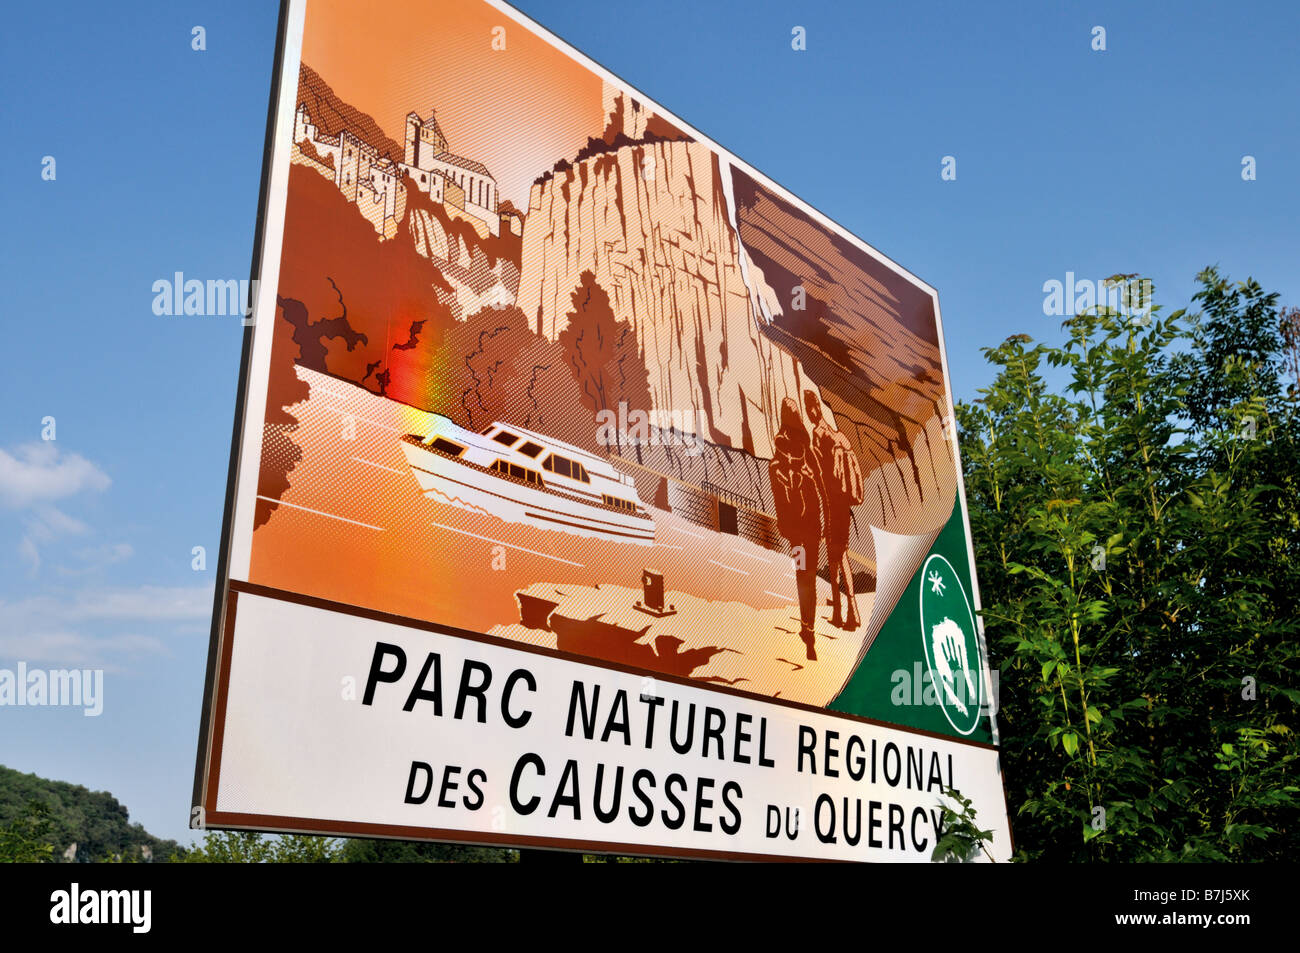 Signal of the Regional Nature Park Causses du Quercy, France - Stock Image